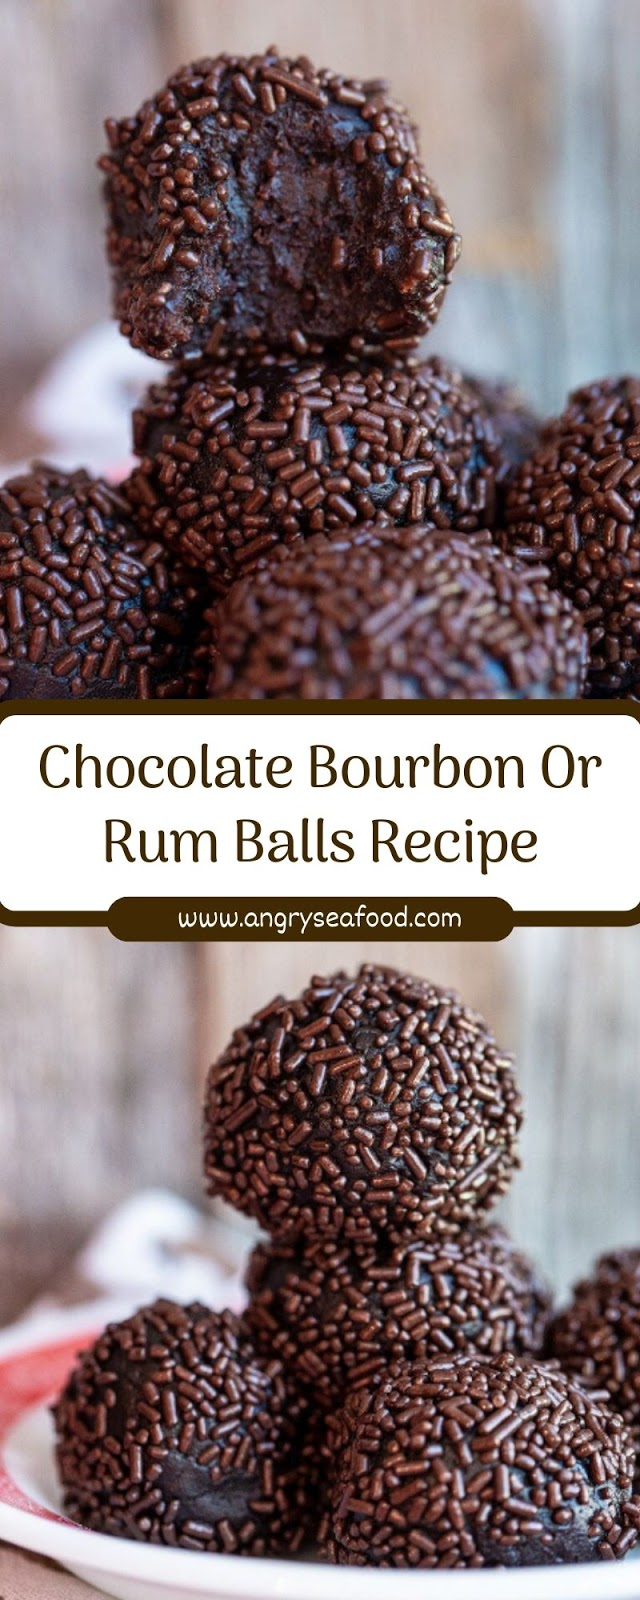 Chocolate Bourbon Or Rum Balls Recipe